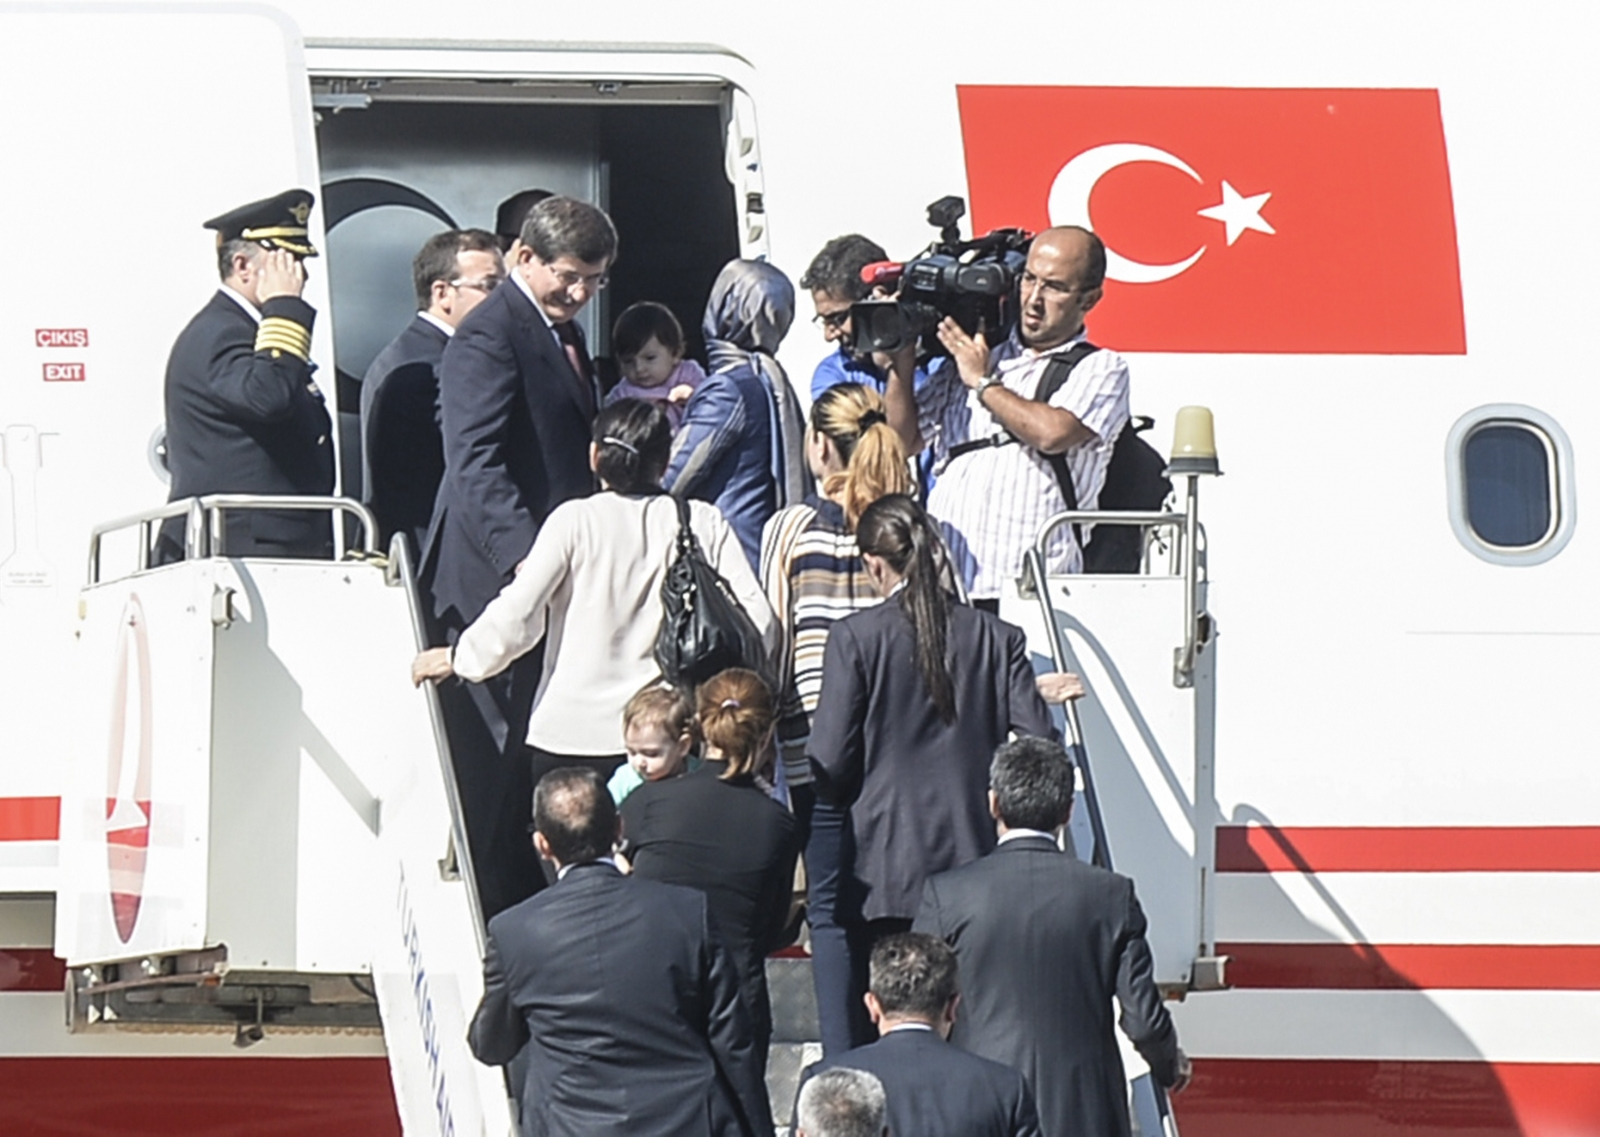 Turkish hostages freed without ransom payment and armed confrontation